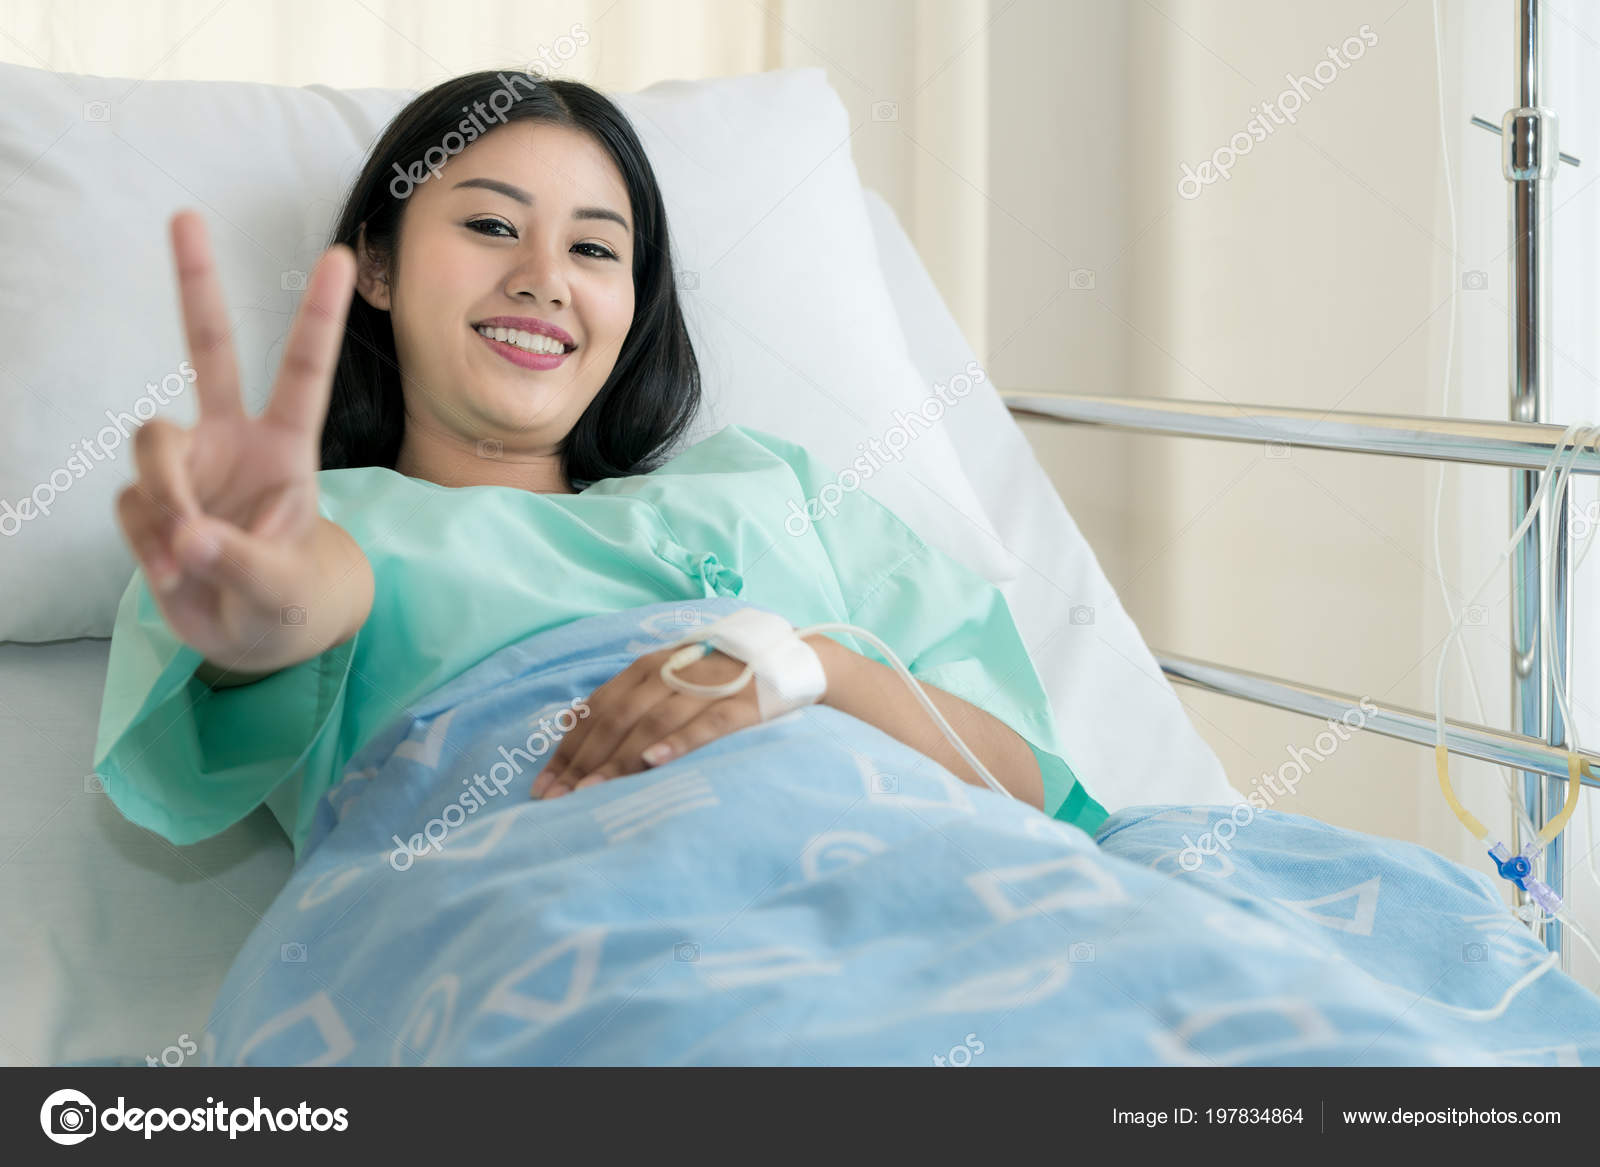 Young Asian Patient Woman Lying Hospital Bed Saline Drip